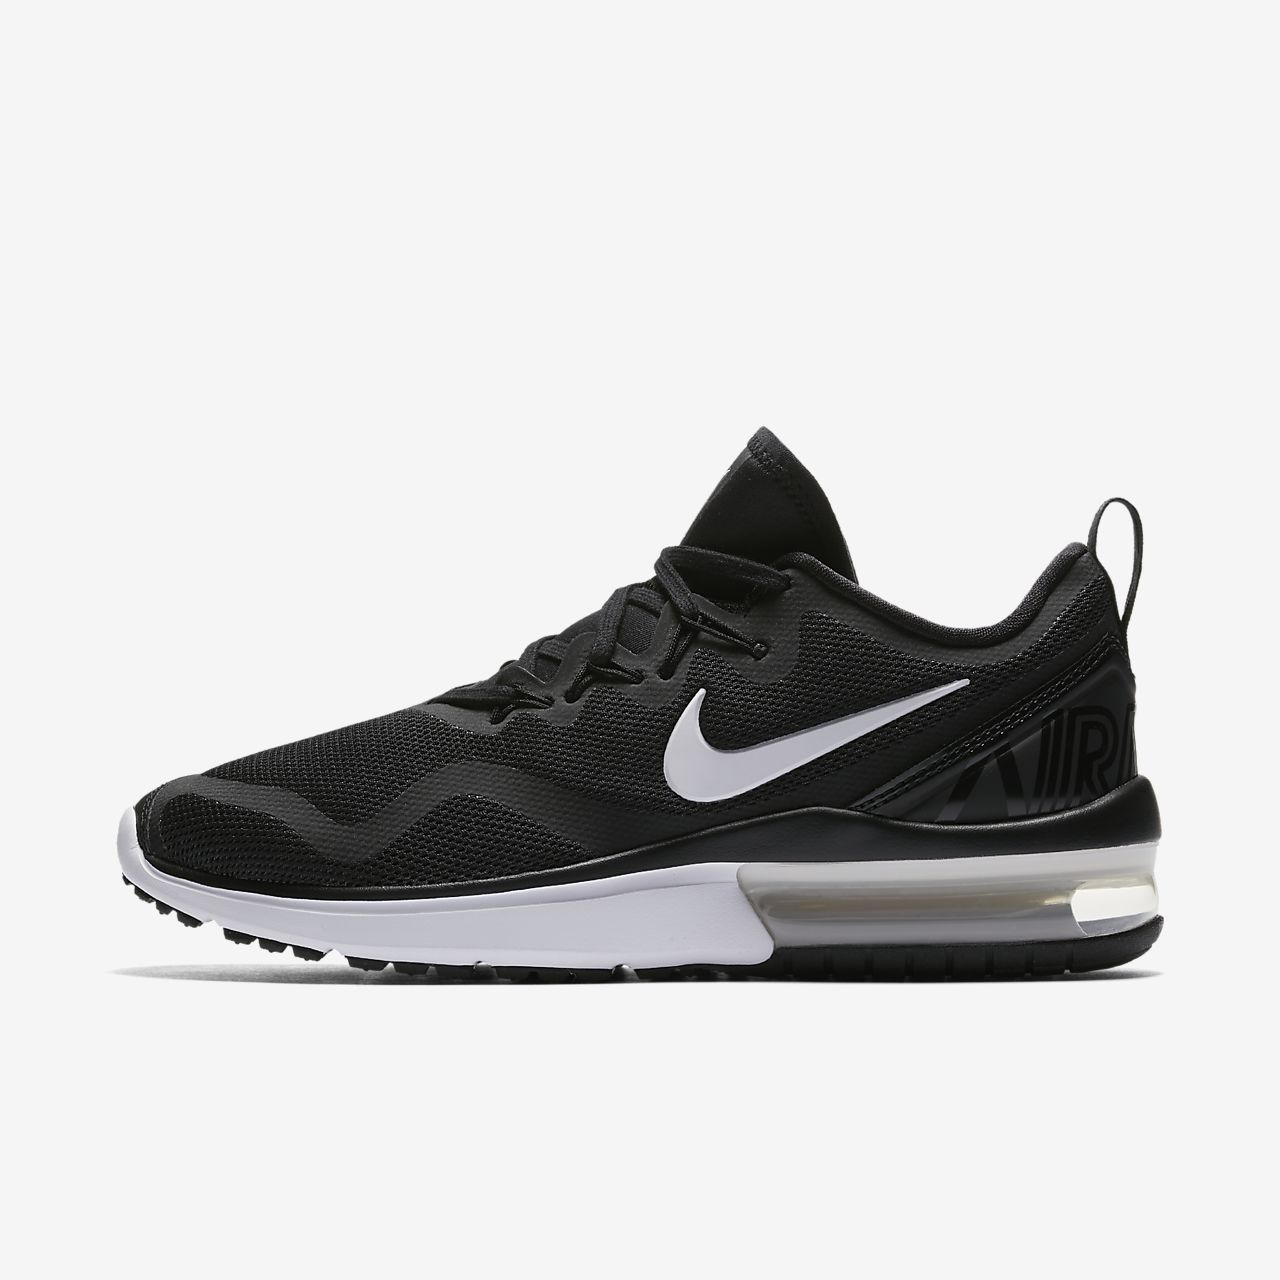 WMNS NIKE AIR MAX FURY BLACK WHITE AA5740-001 Womens running shoes